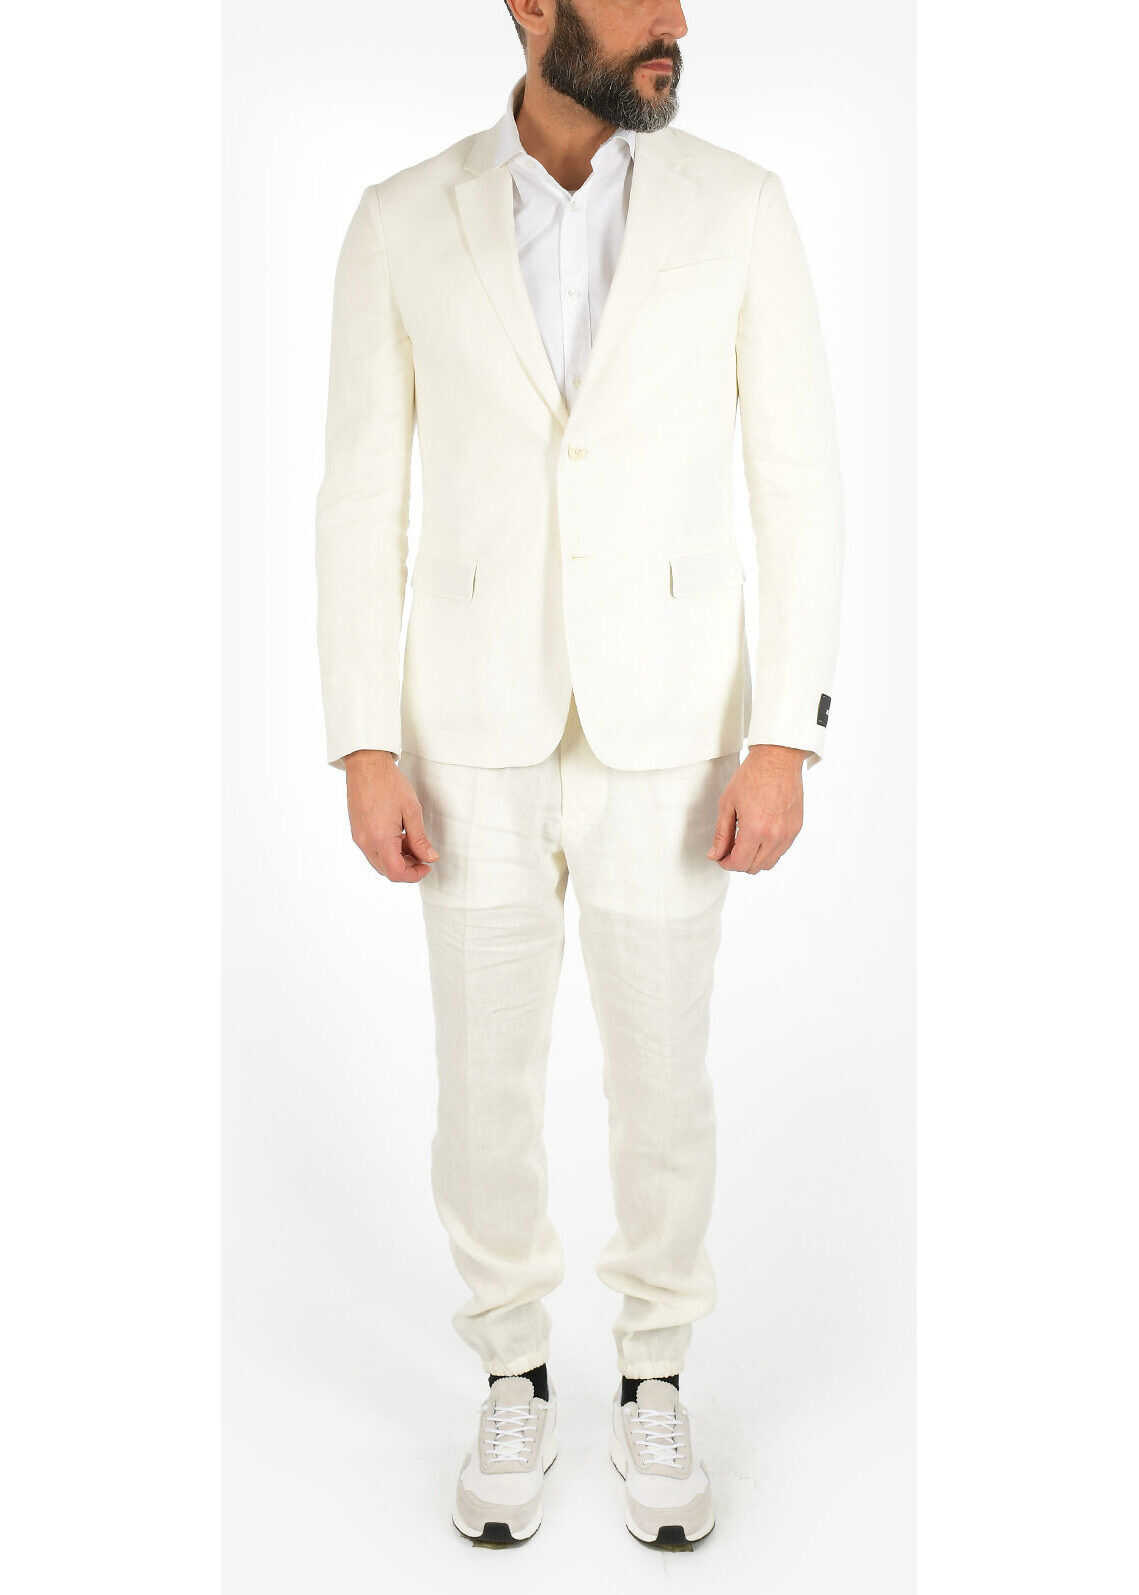 Z ZEGNA Linen Two Button Suit with Flap Pockets